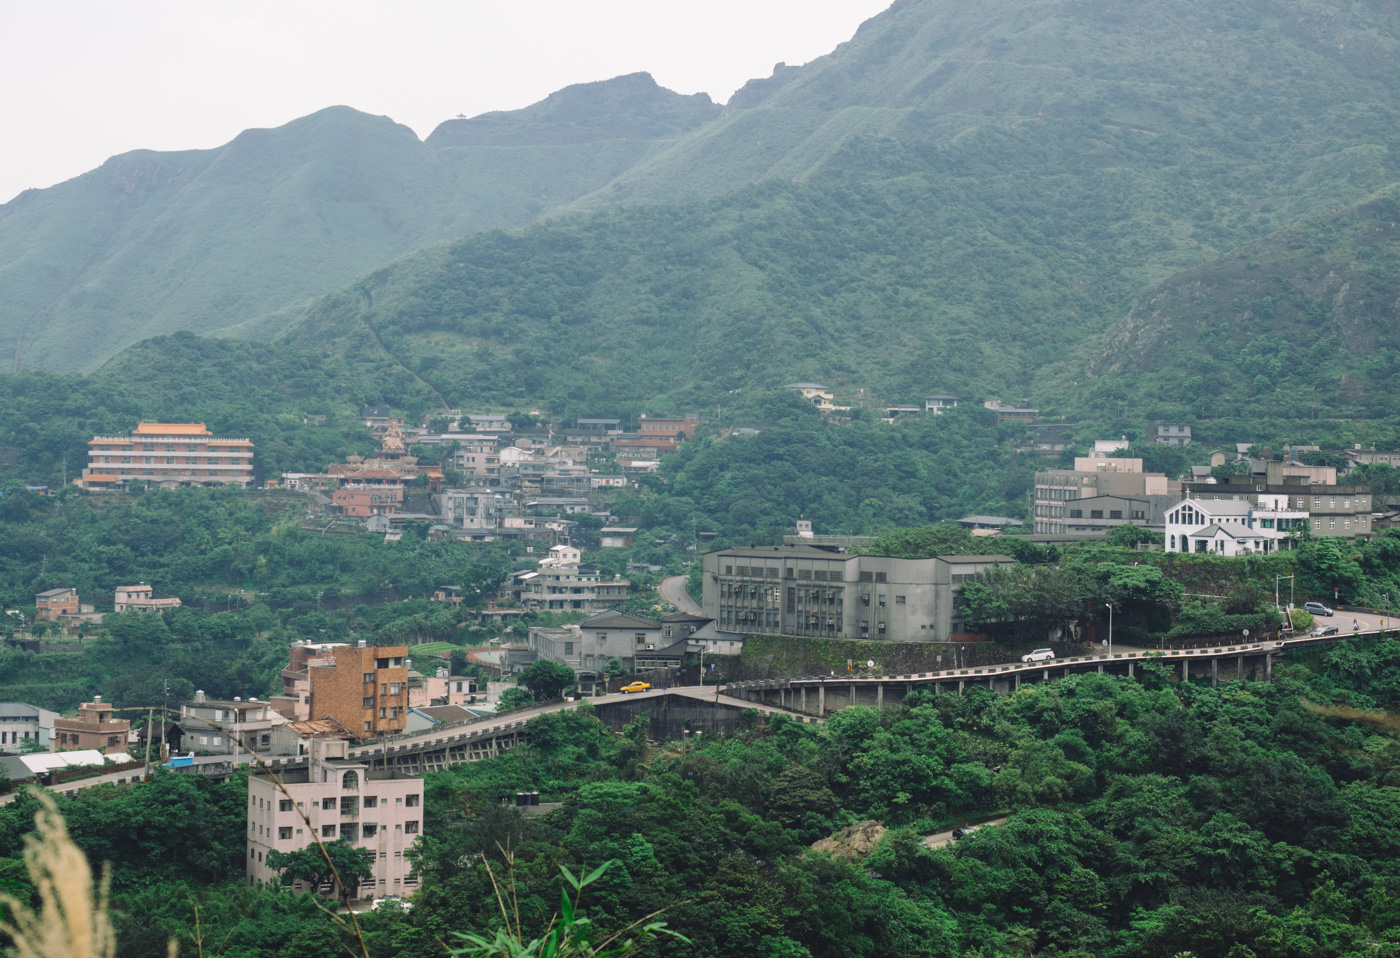 Taiwan - New Taipei City - Houses along the mountains